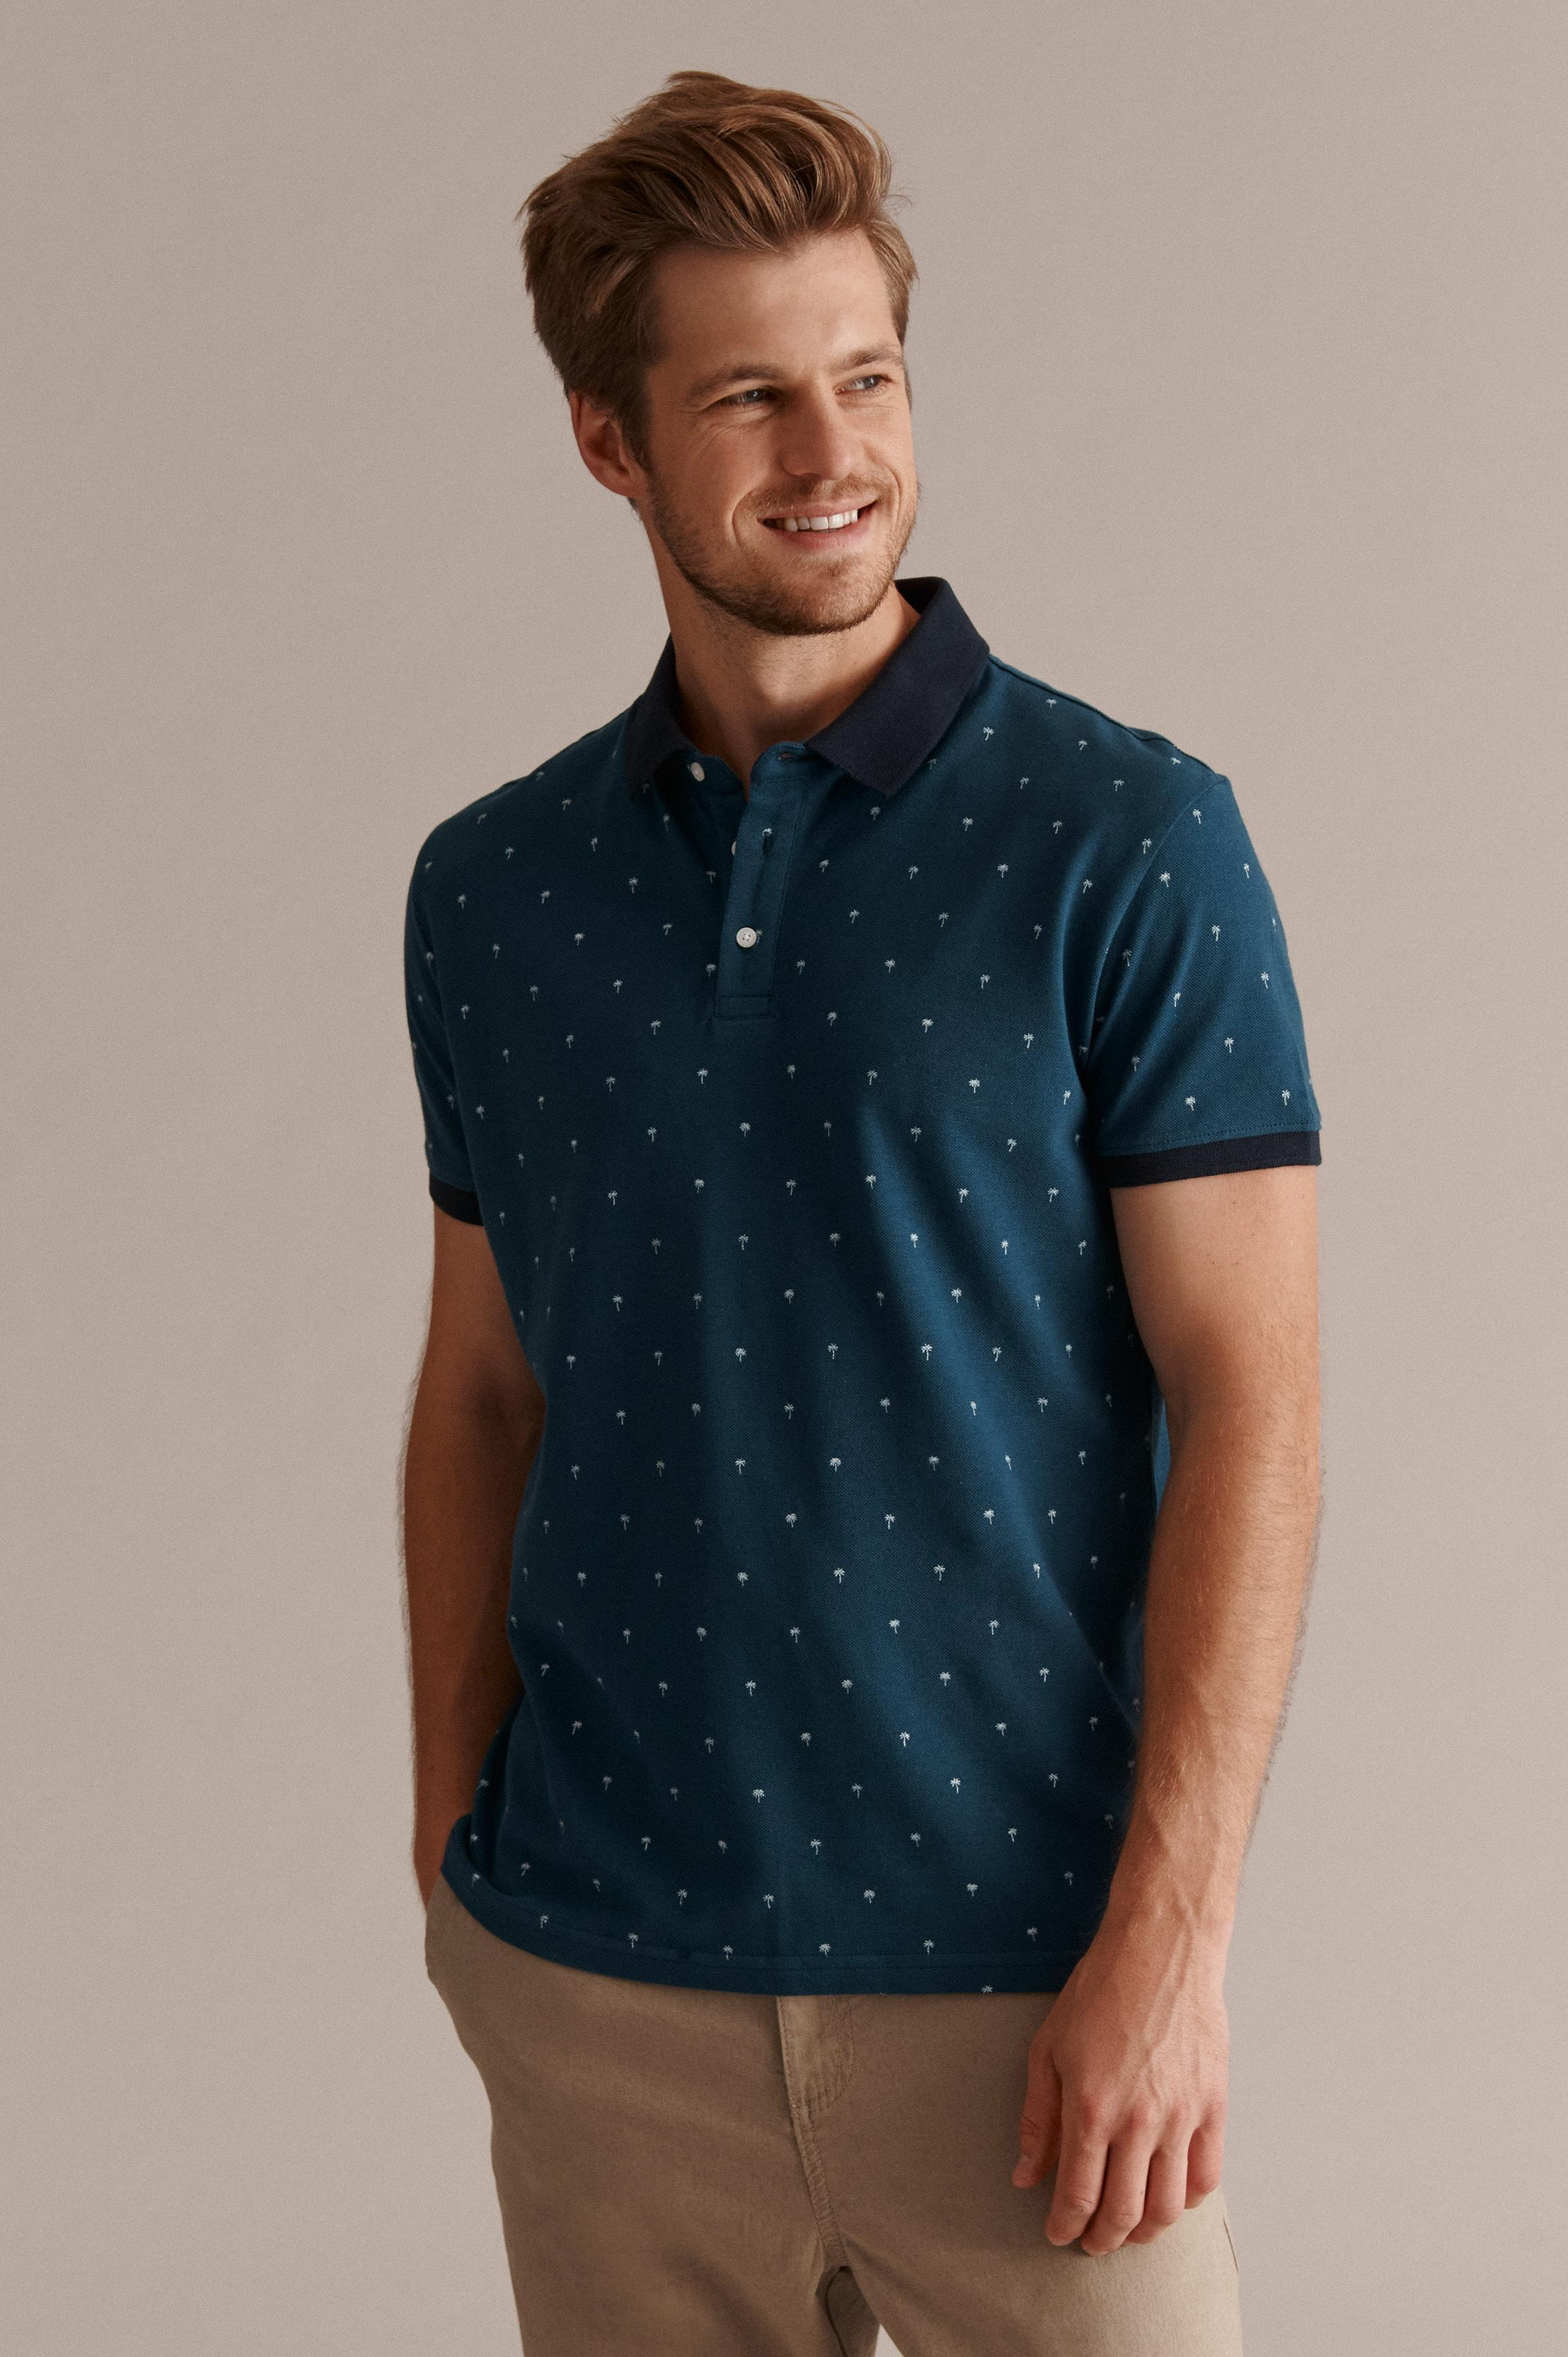 MEN'S KNITTED POLO SHIRT HINT 2